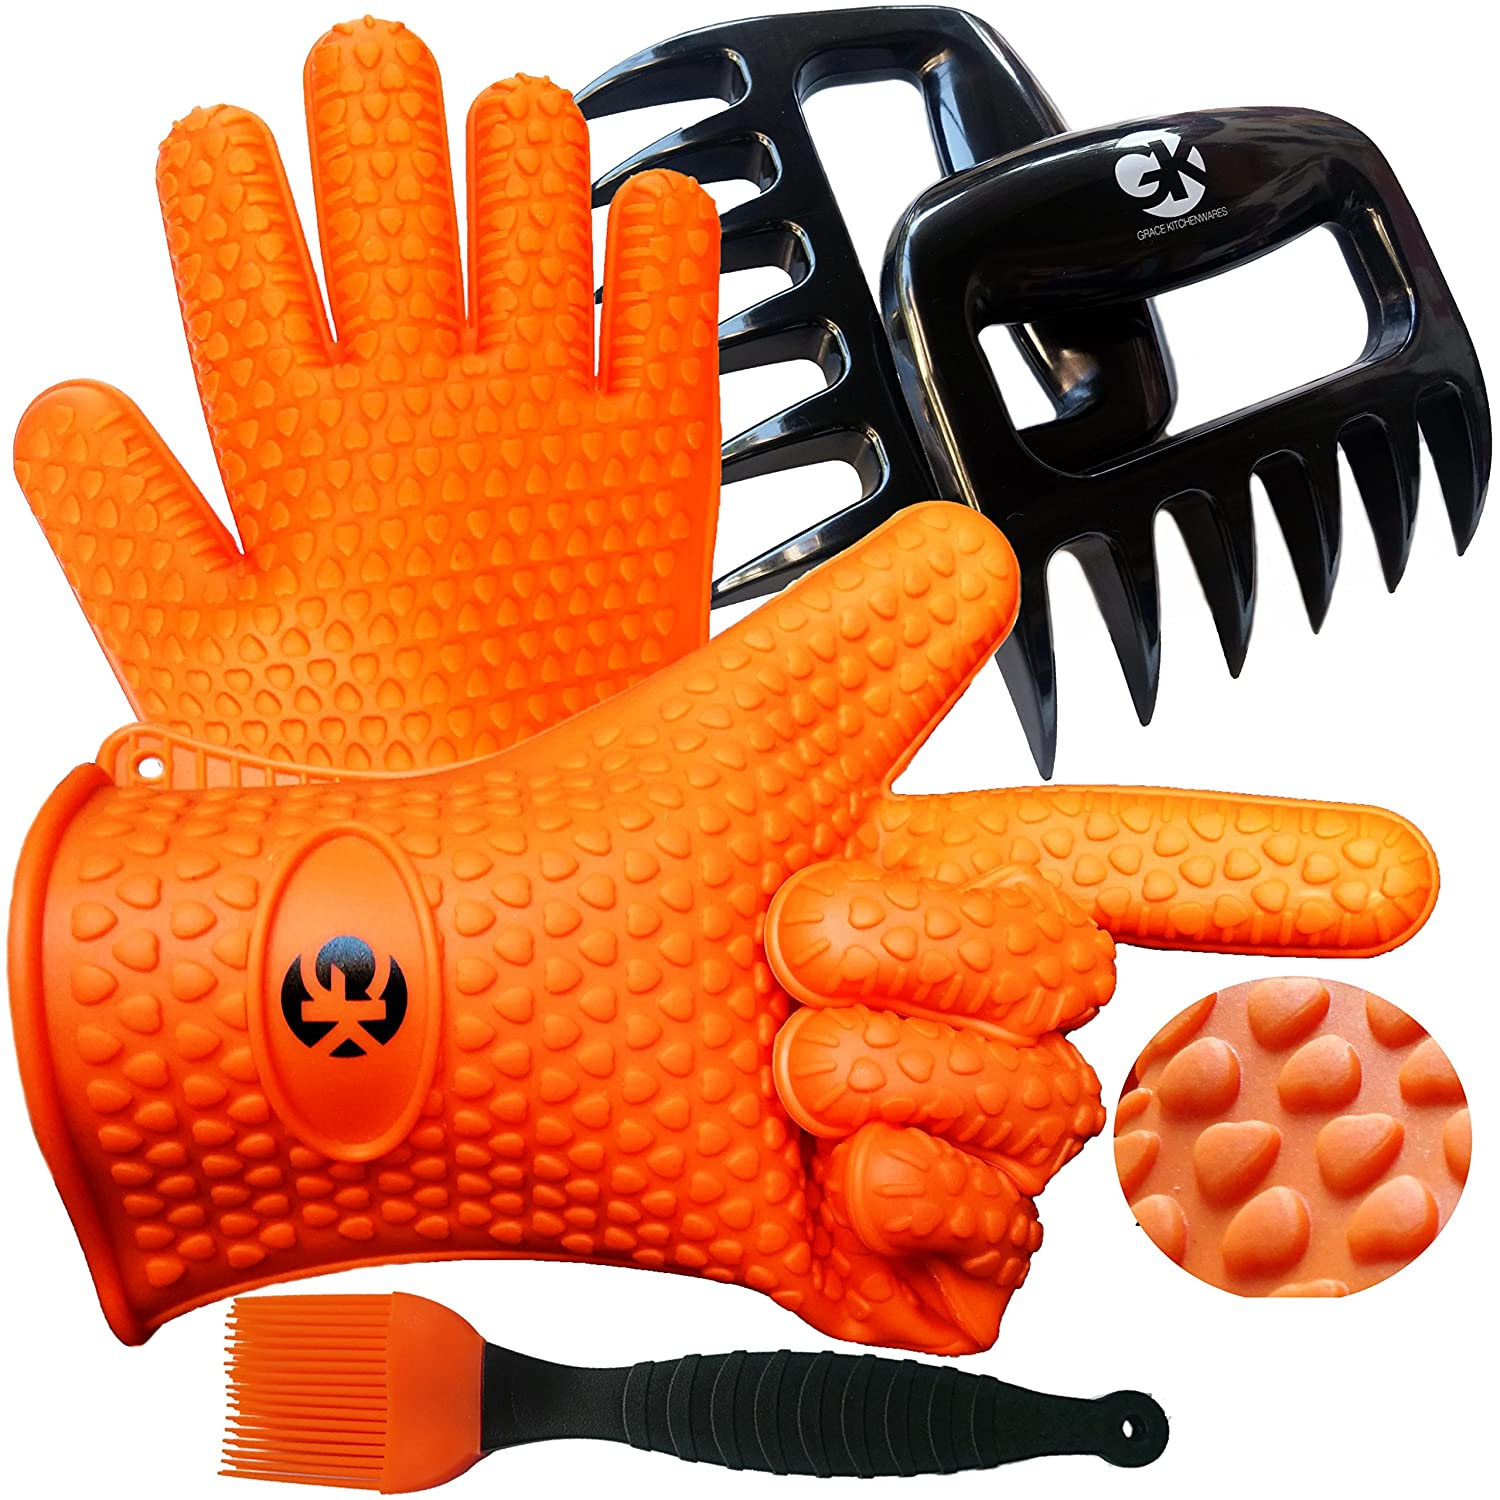 3 x No.1 Set: The No.1 Silicone BBQ /Cooking Gloves Plus The No.1 Meat Shredder Plus No.1 Silicone Baster PLUS eBooks w/ 344 Recipes. Superior Value Premium Set. 100% $ Back Satisfaction Guarantee Grace Kitchenwares GK 201